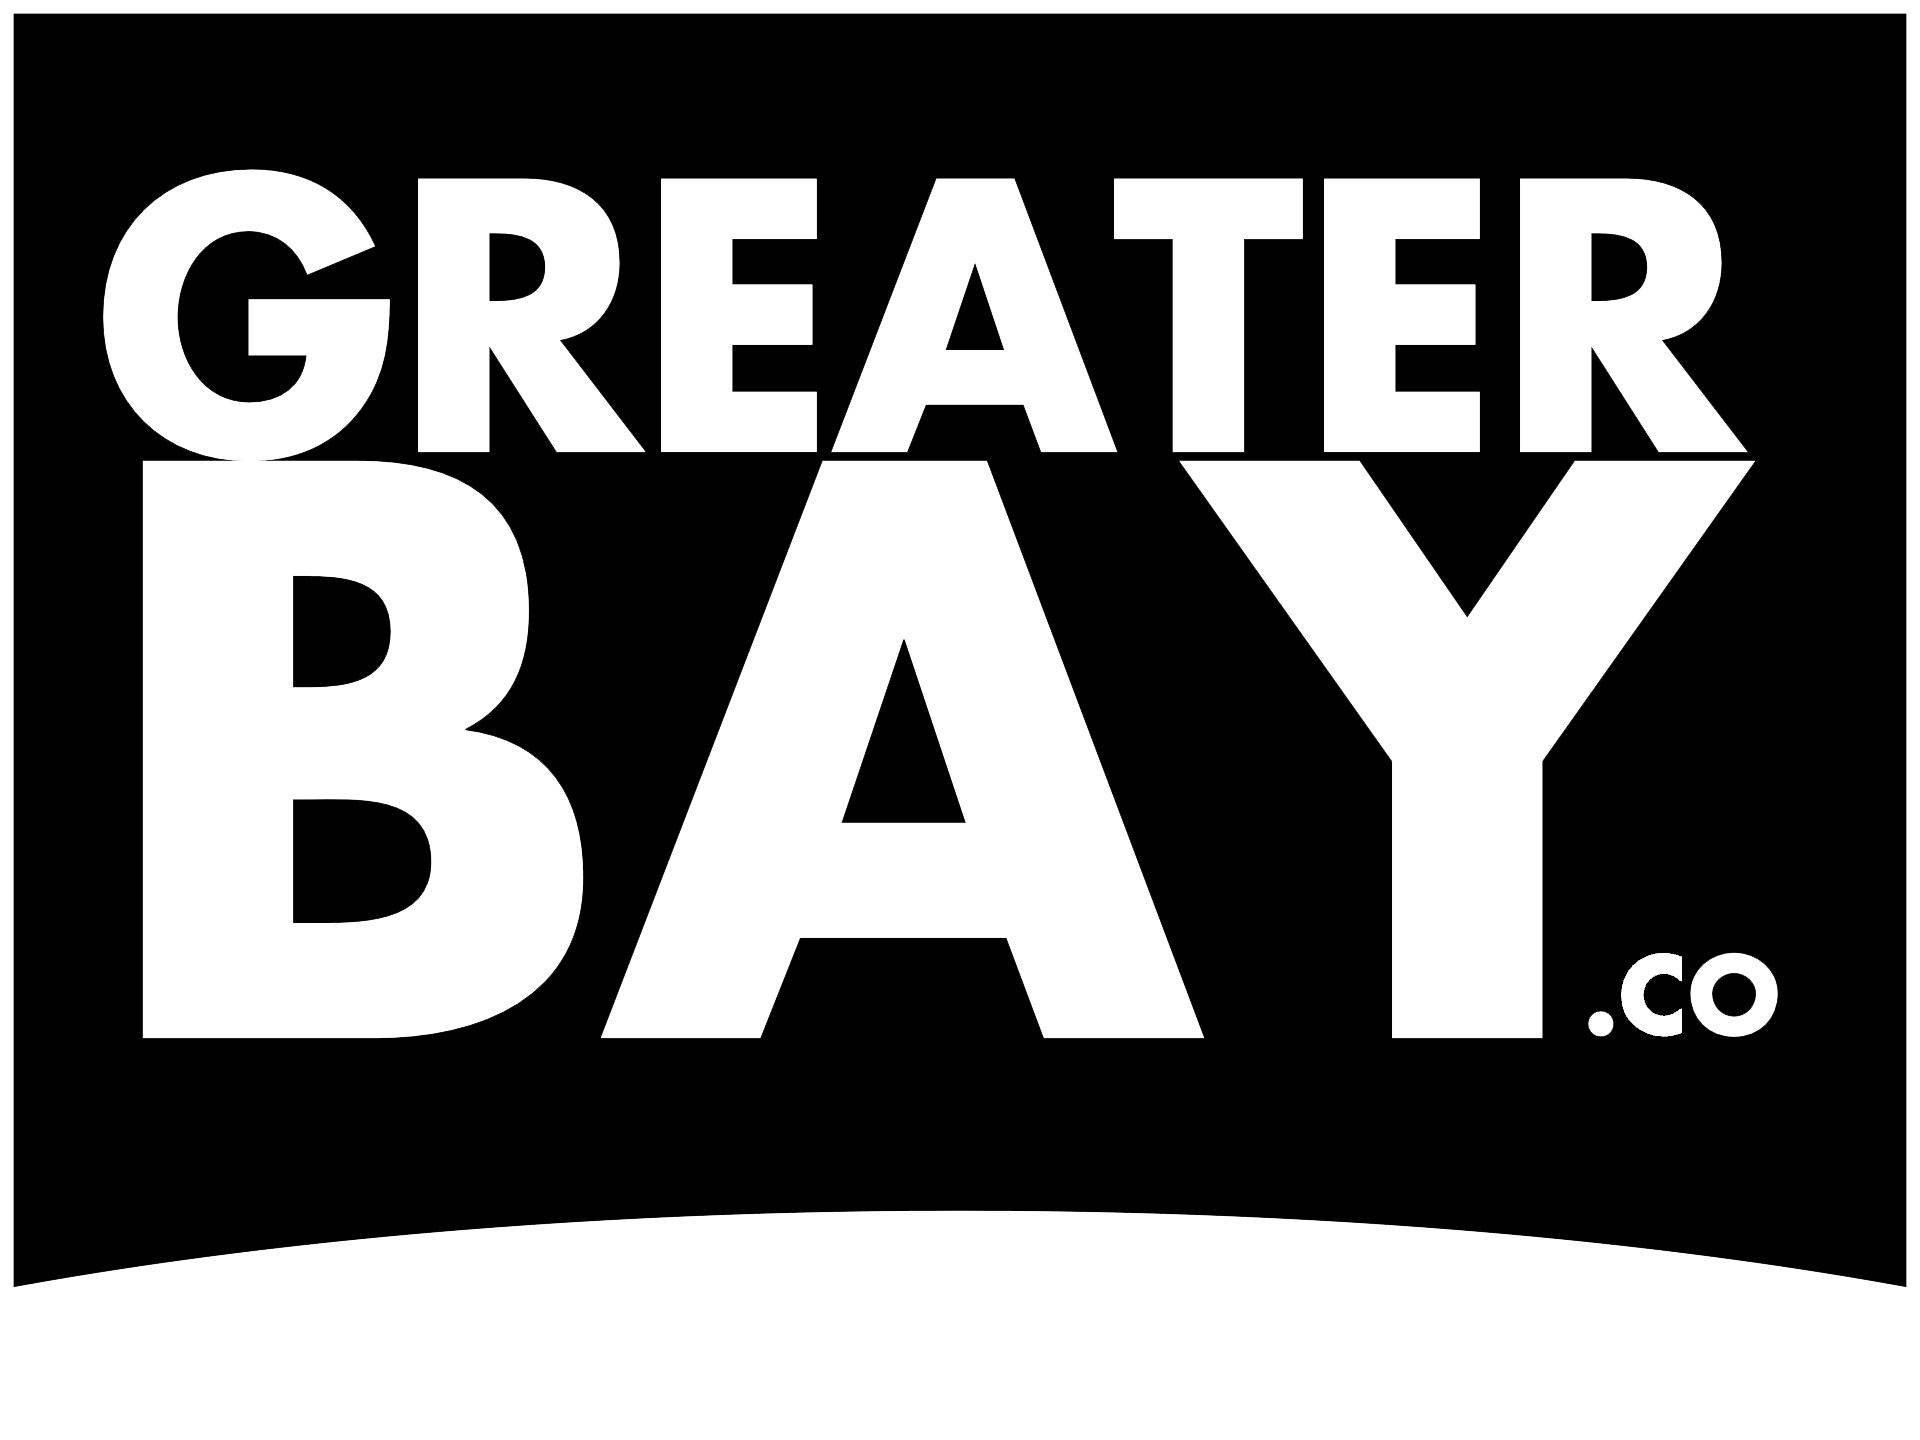 Greater Bay Co